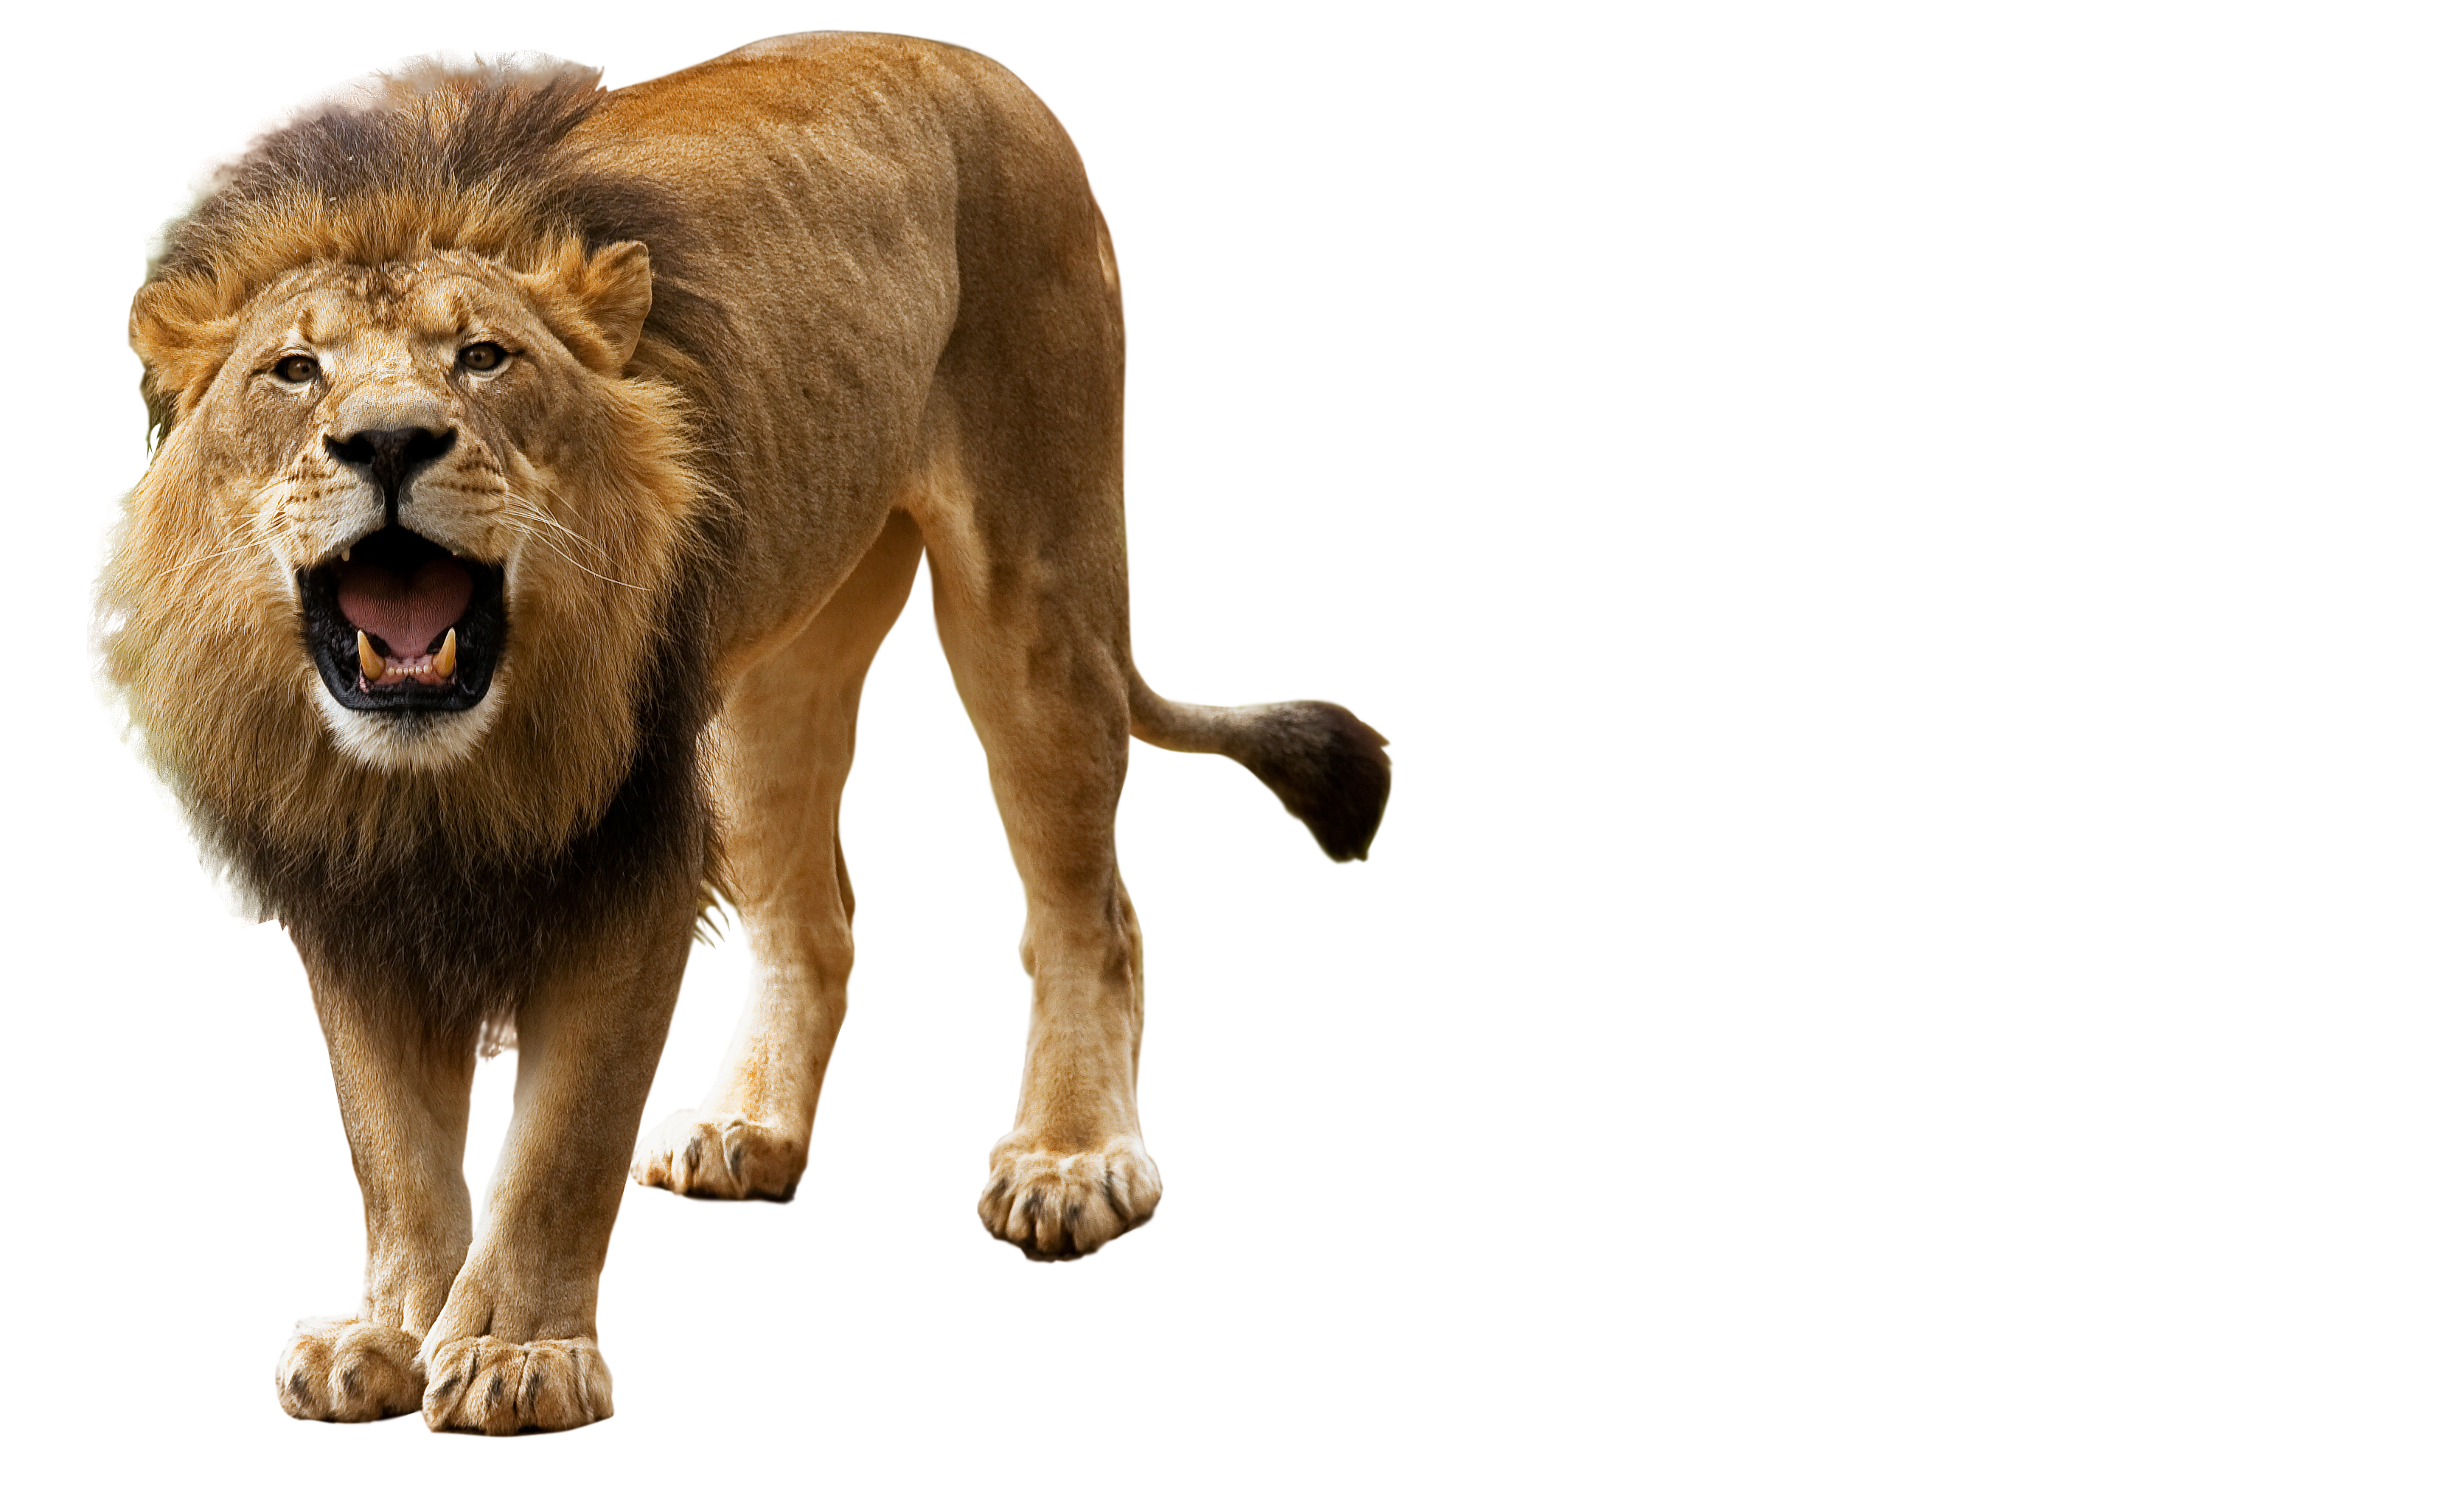 Lion png. Transparent pictures free icons